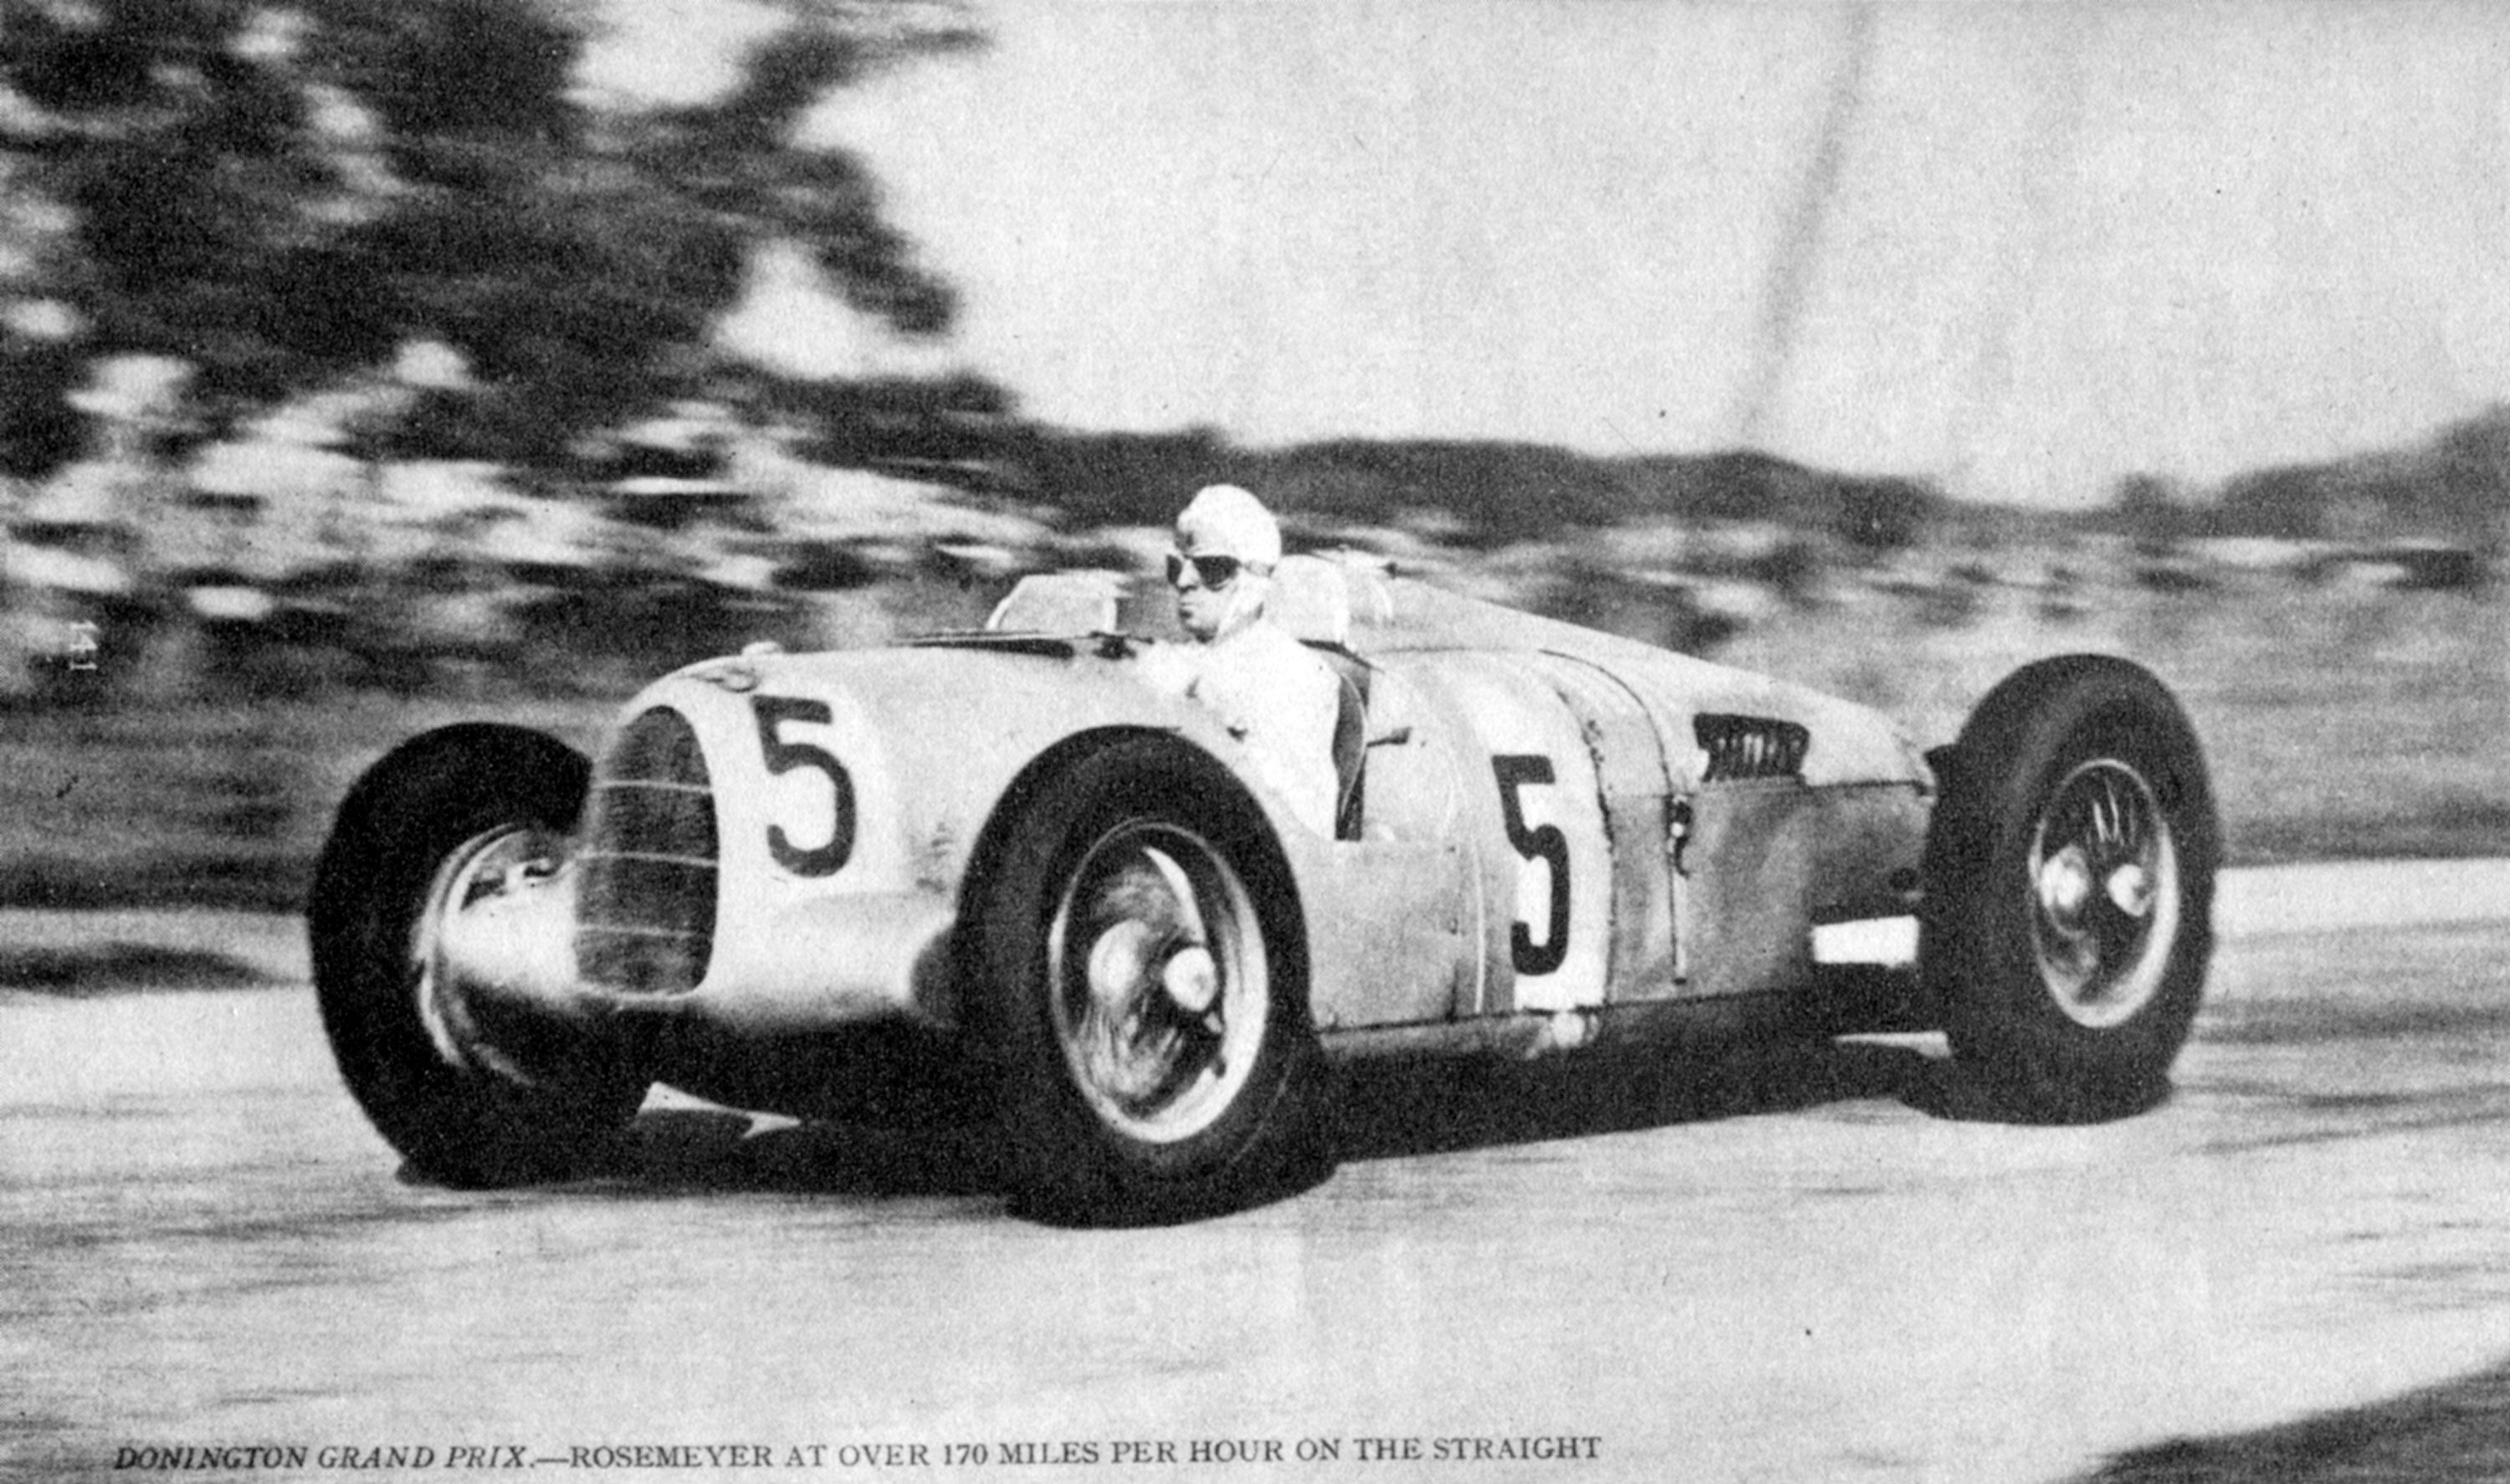 Rosemeyer at the Donington Grand Prix, 1936 doing 170 miles per hour on the straight in his Auto-Union.